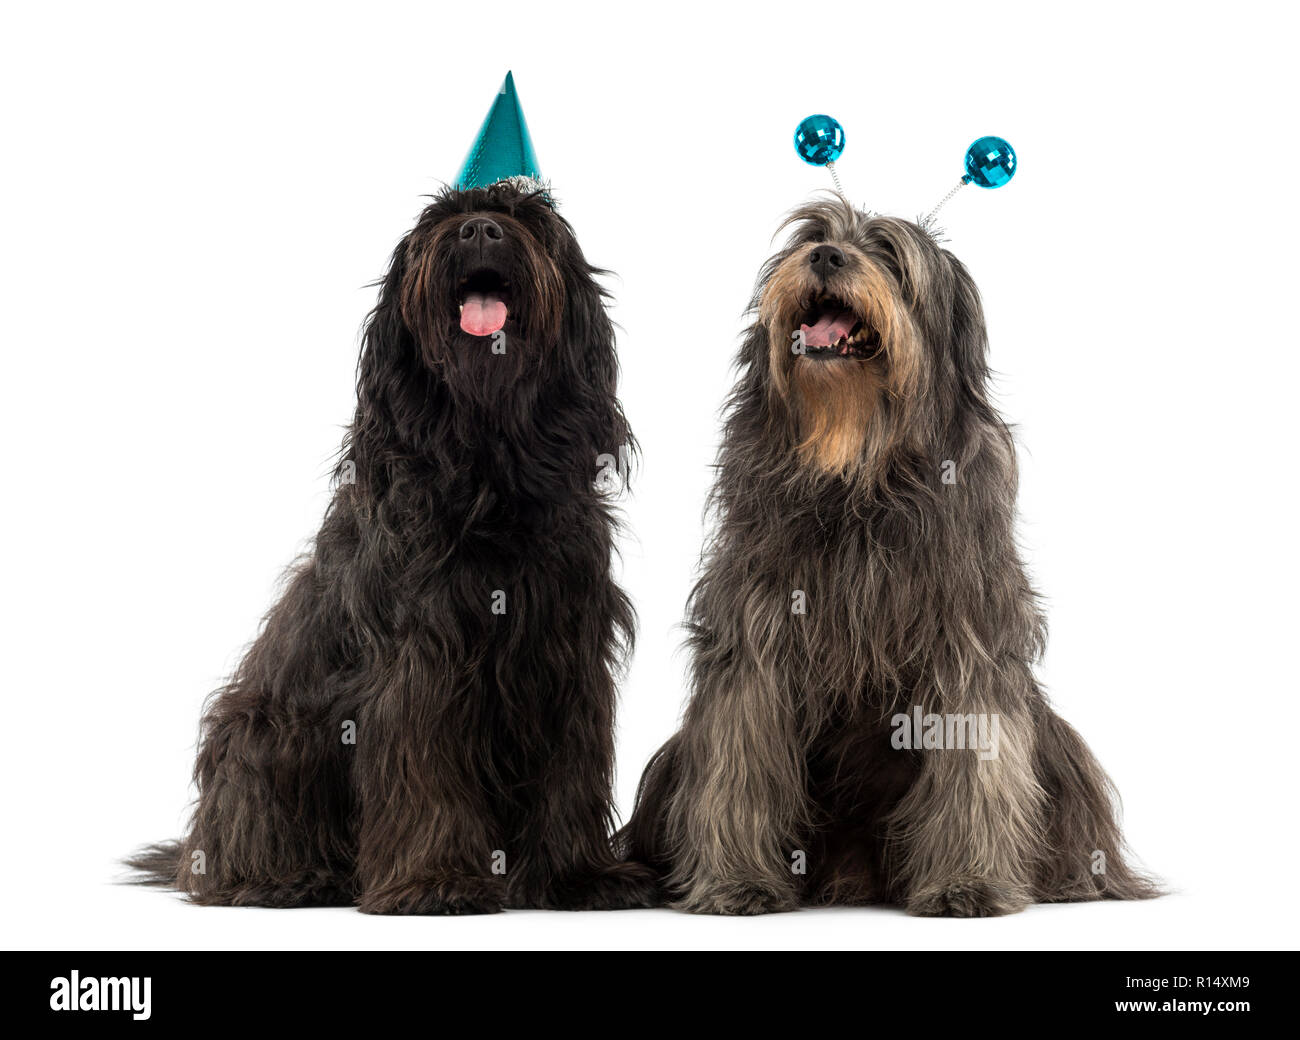 Couple of Catalan sheepdogs wearing party hats, panting, isolated on white - Stock Image